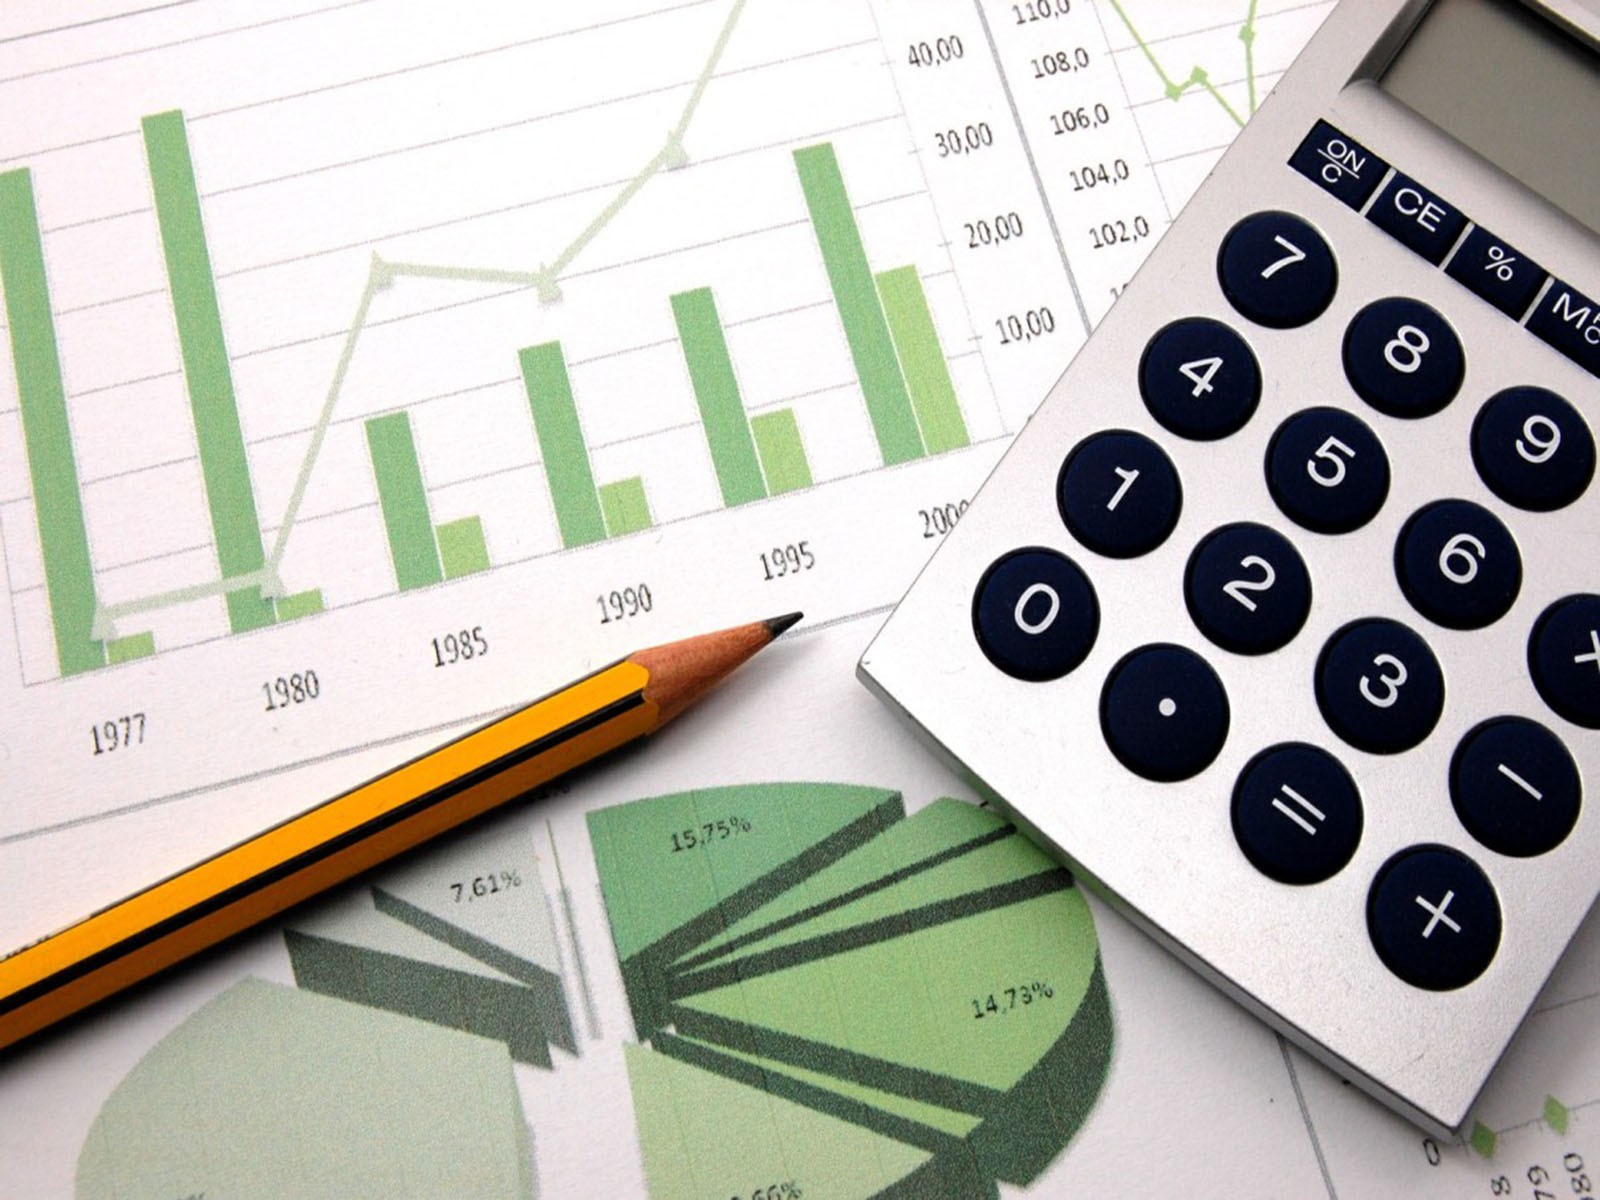 Outsourcing Bookkeeping Services to India: Cost effective solutions for all your bookkeeping needs